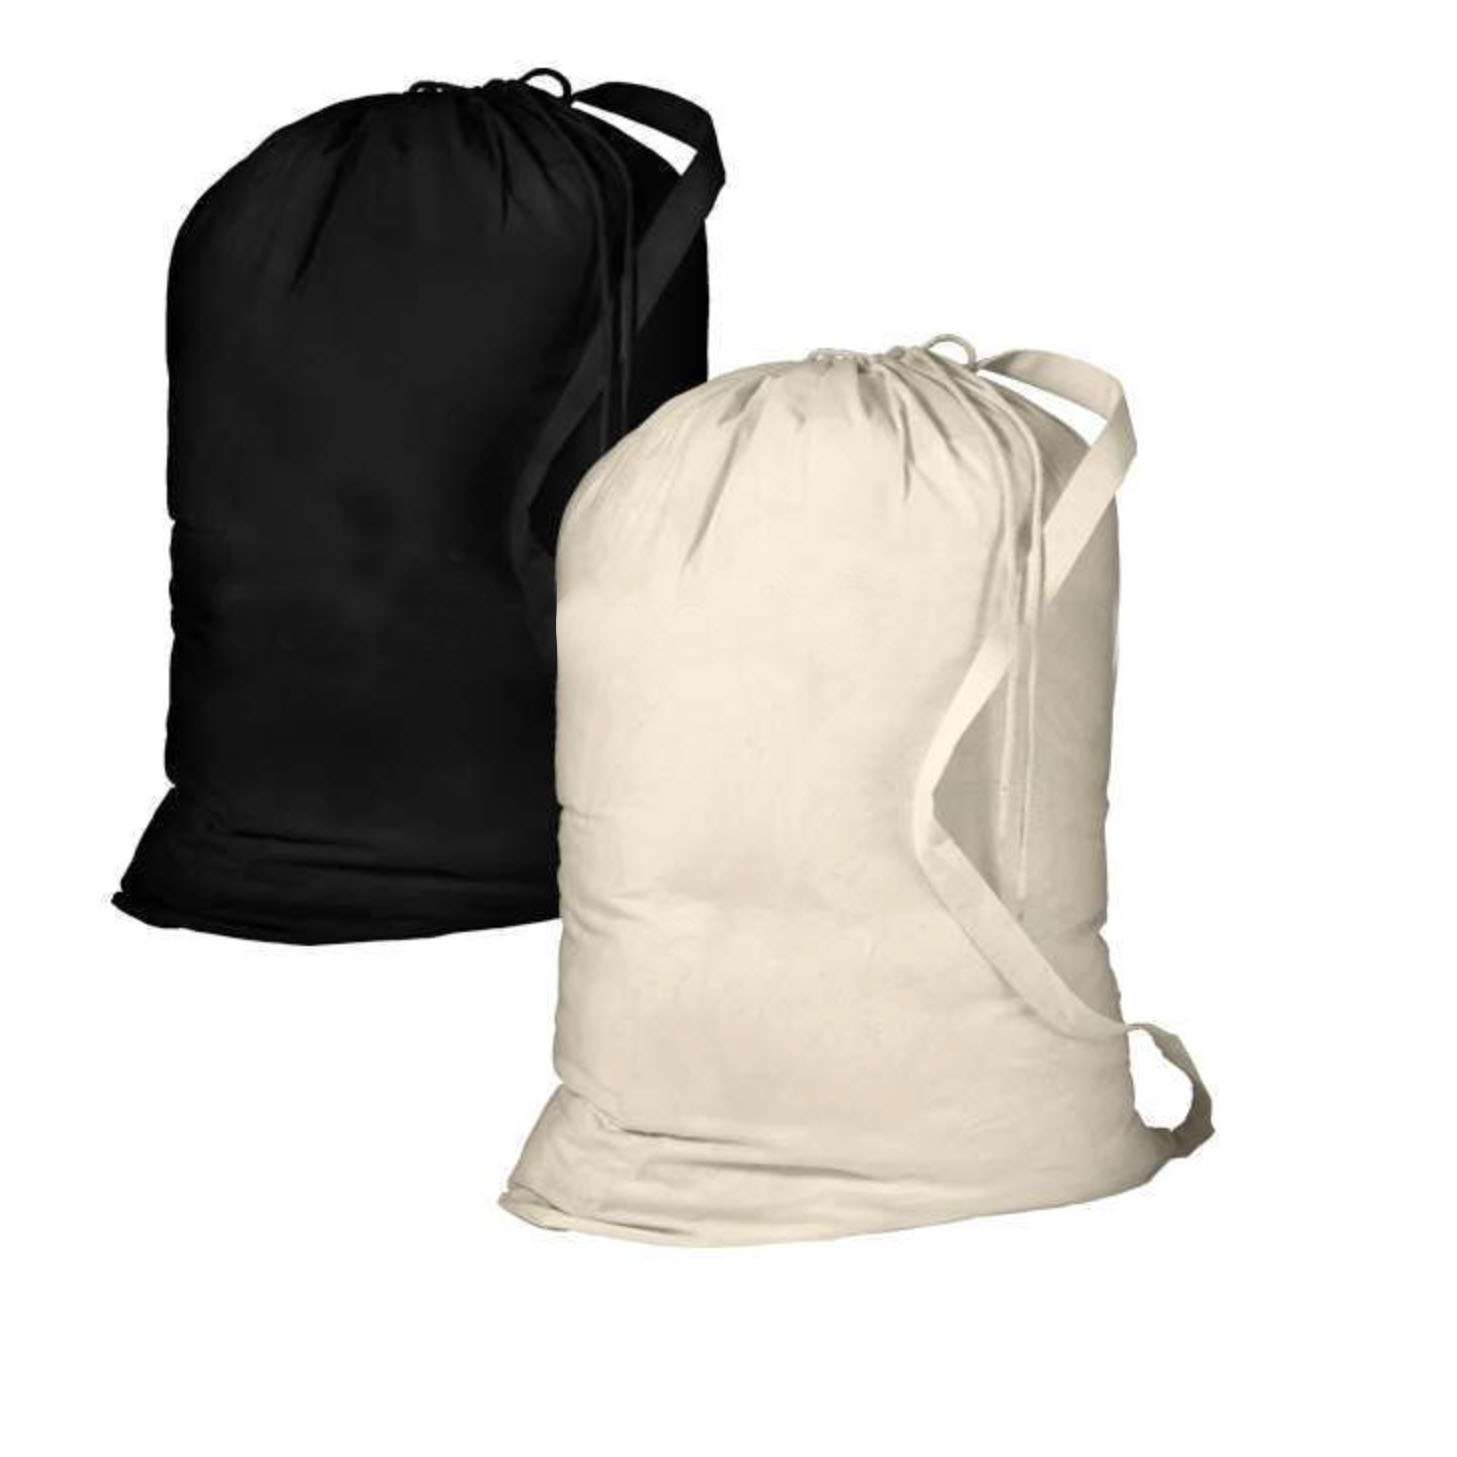 cotton drawstring duffle bag